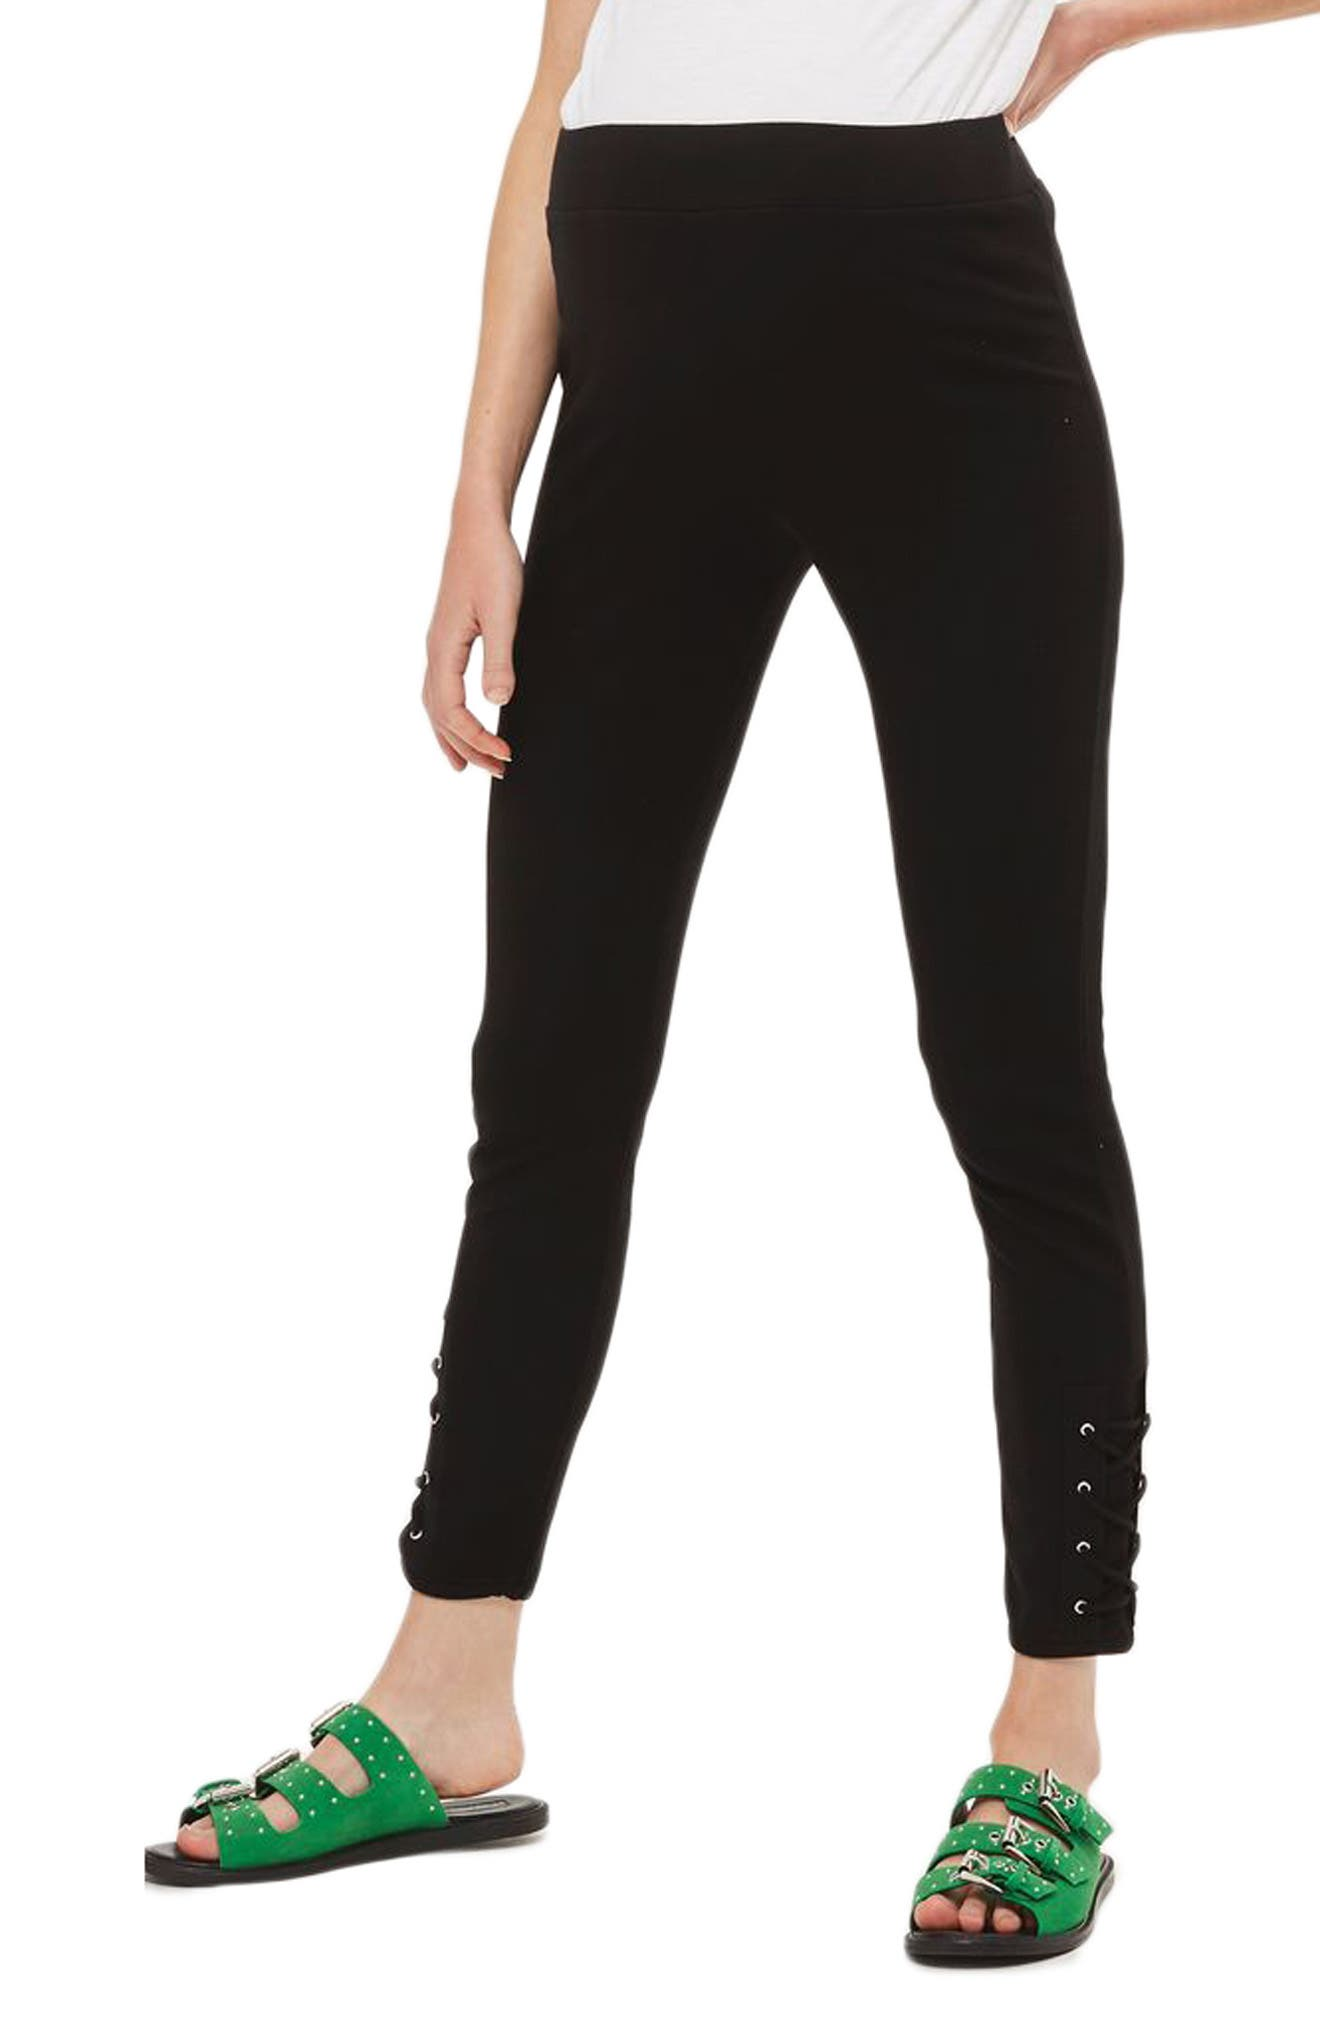 Topshop Lace-Up Ankle Maternity Leggings